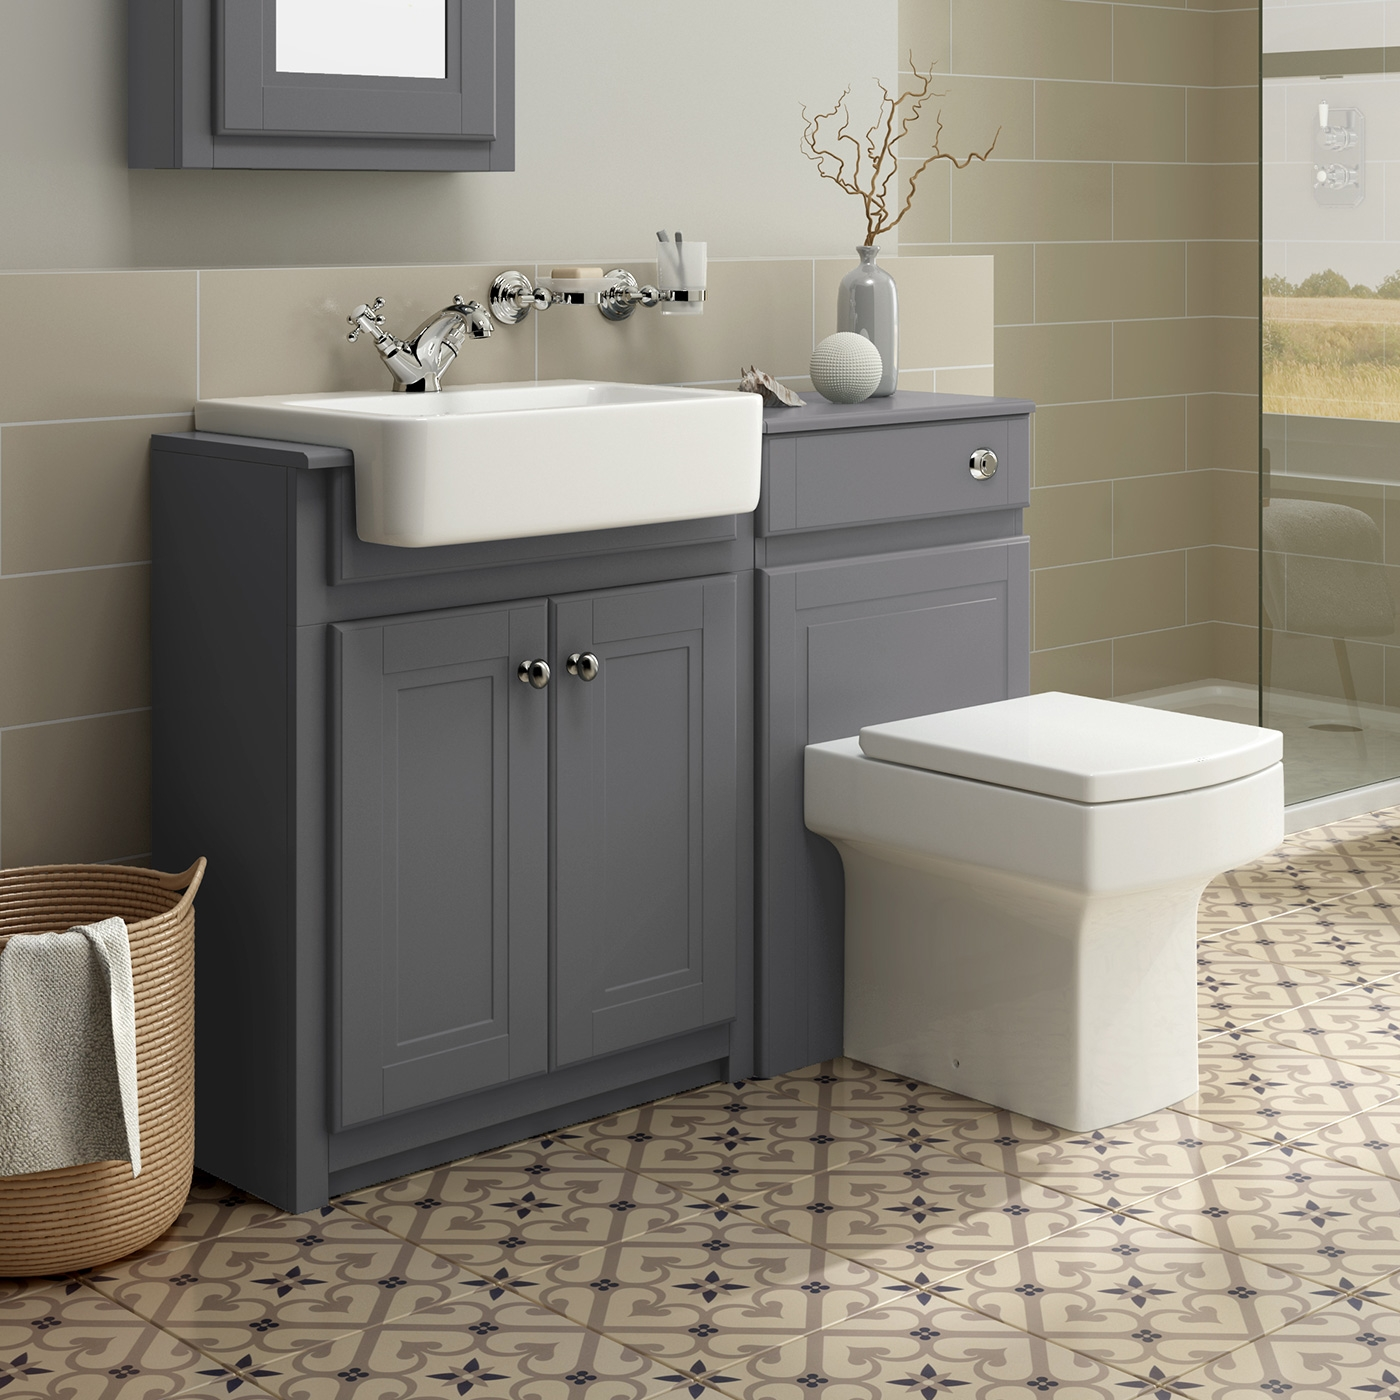 Permalink to Combination Vanity Units For Bathrooms